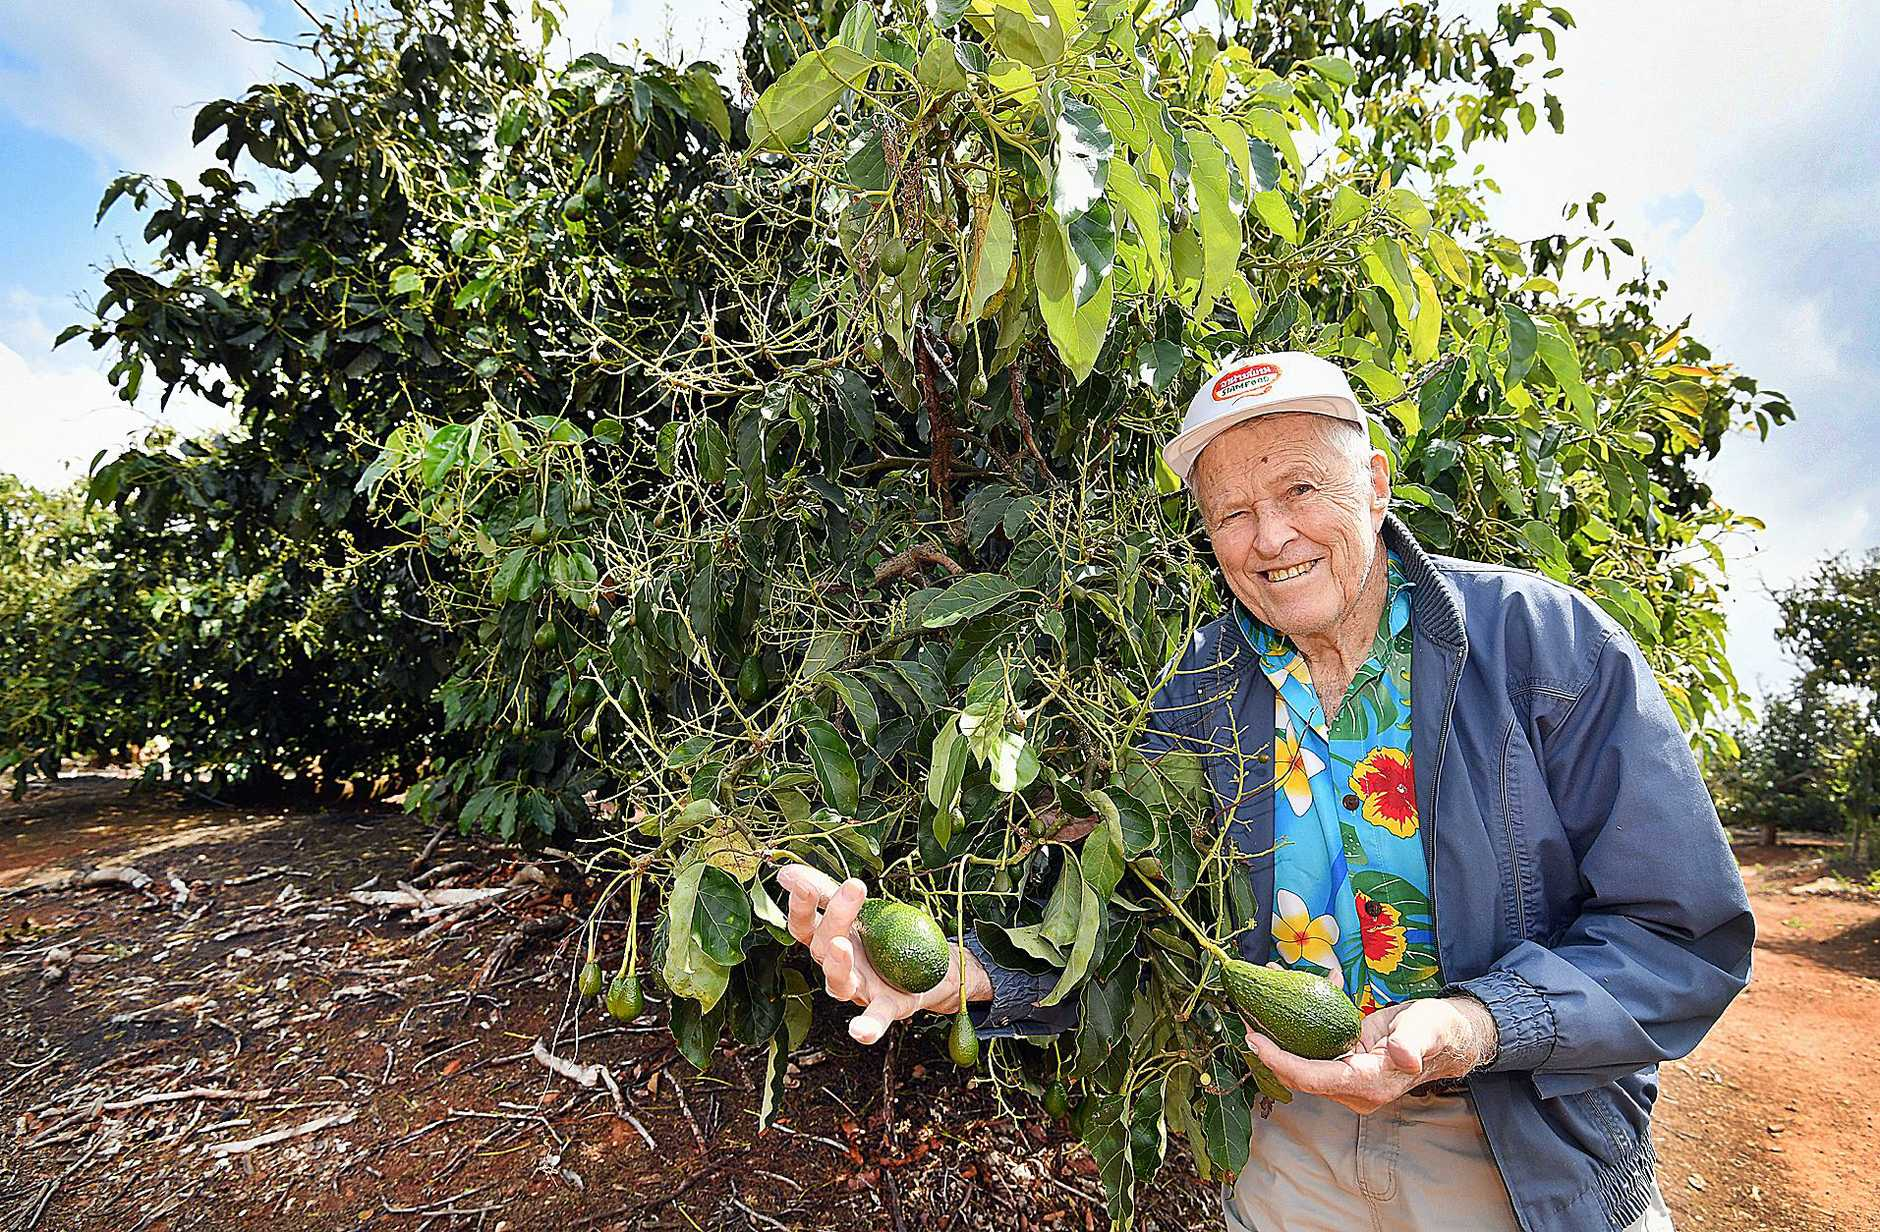 Yengarie storm damage one year on - farmer John Atkinson with his avocado trees starting to bear fruit after they were stripped bare 12 months earlier.